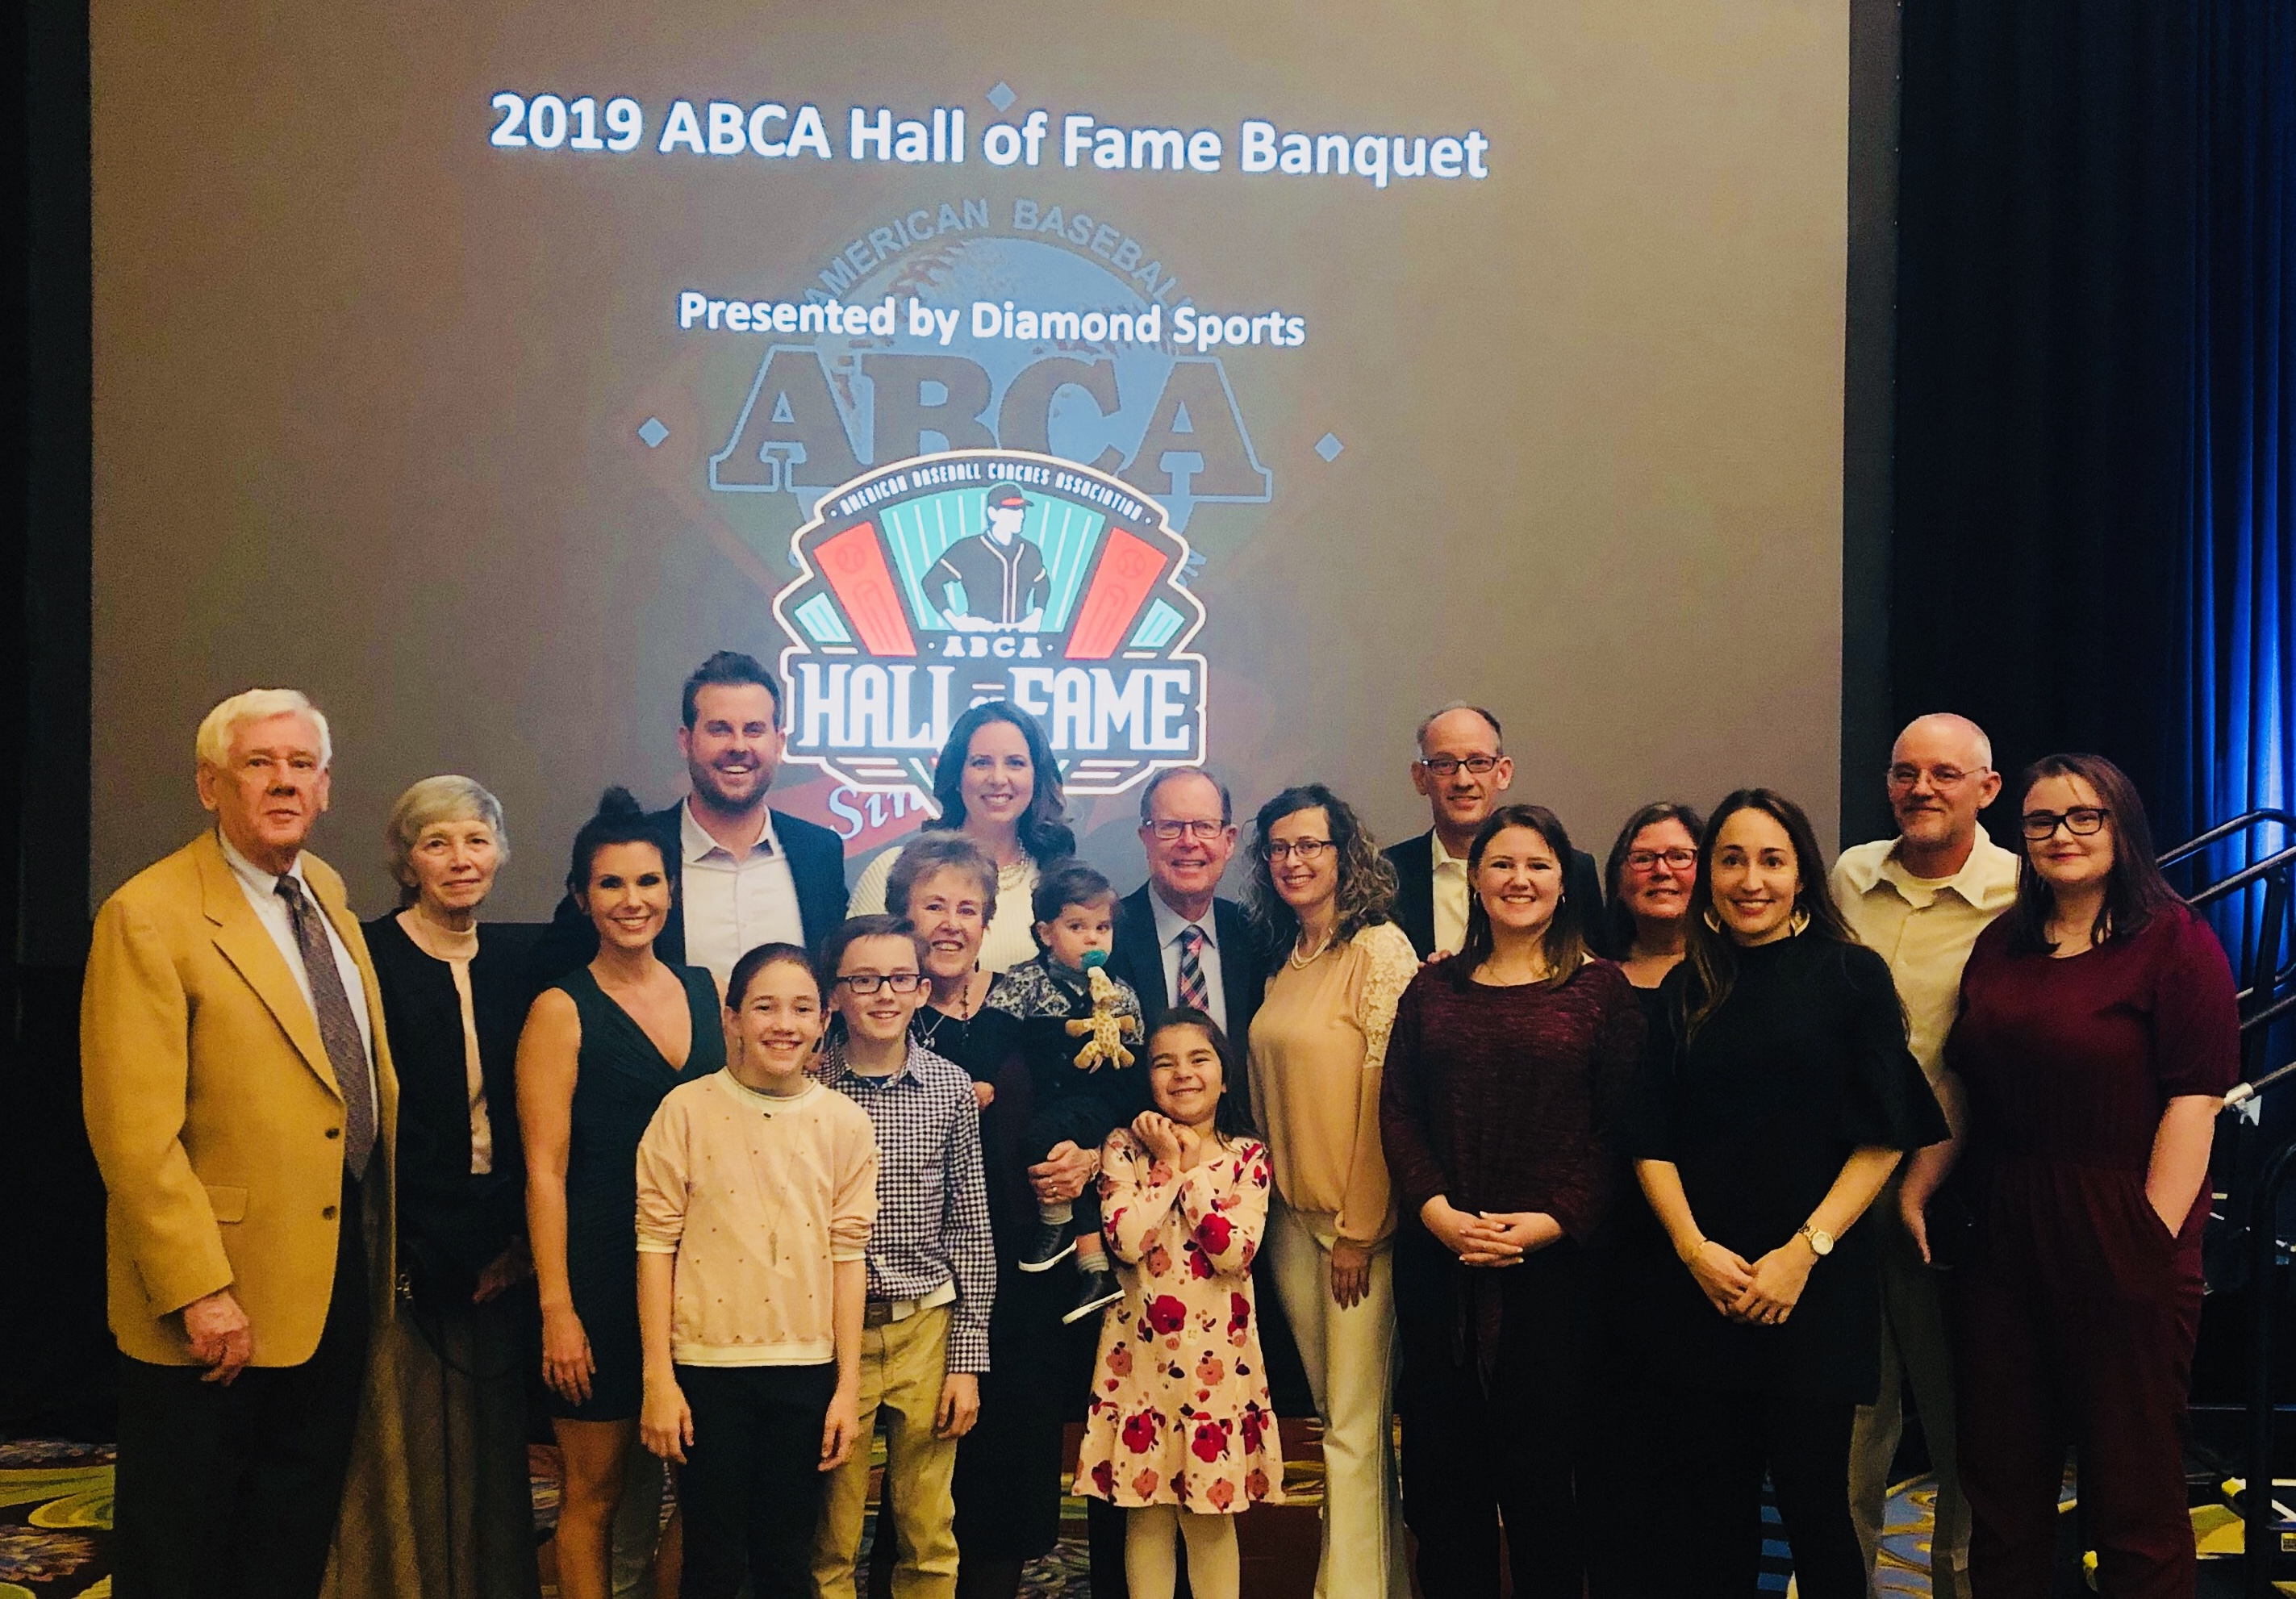 Coach Pat Doyle, surrounded by family and friends at his Hall of Fame induction. Doyle coached baseball at San Joaquin Delta College from 1977 through 2000.